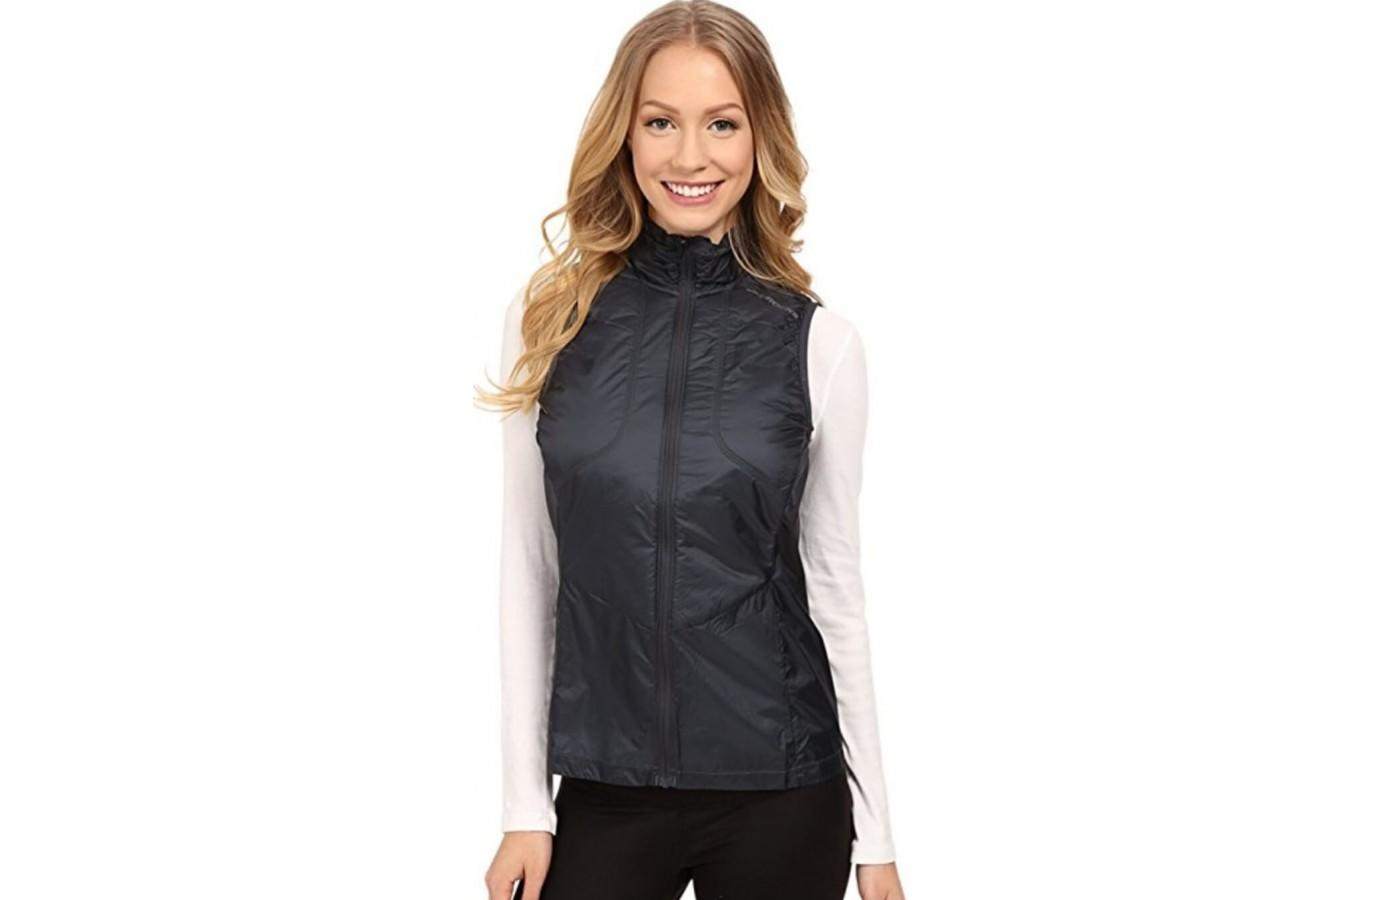 Brooks LSD Thermal Vest keeps you warm and dry in cool temperatures.